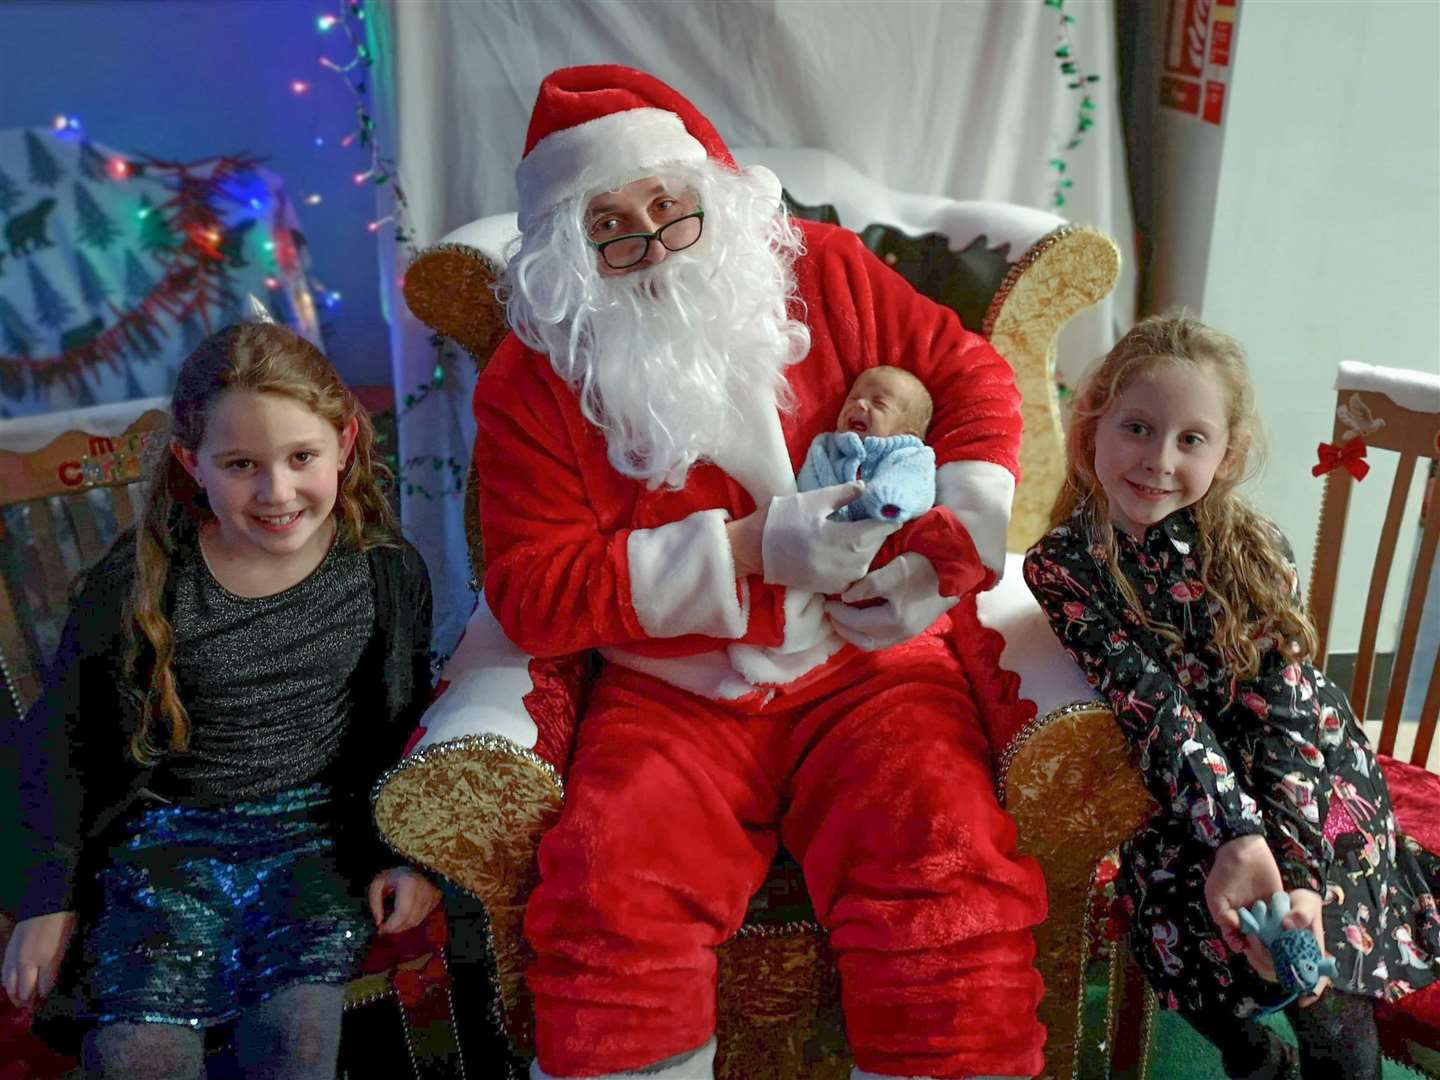 Cadence, Sienna and Jesse with Santa Claus.